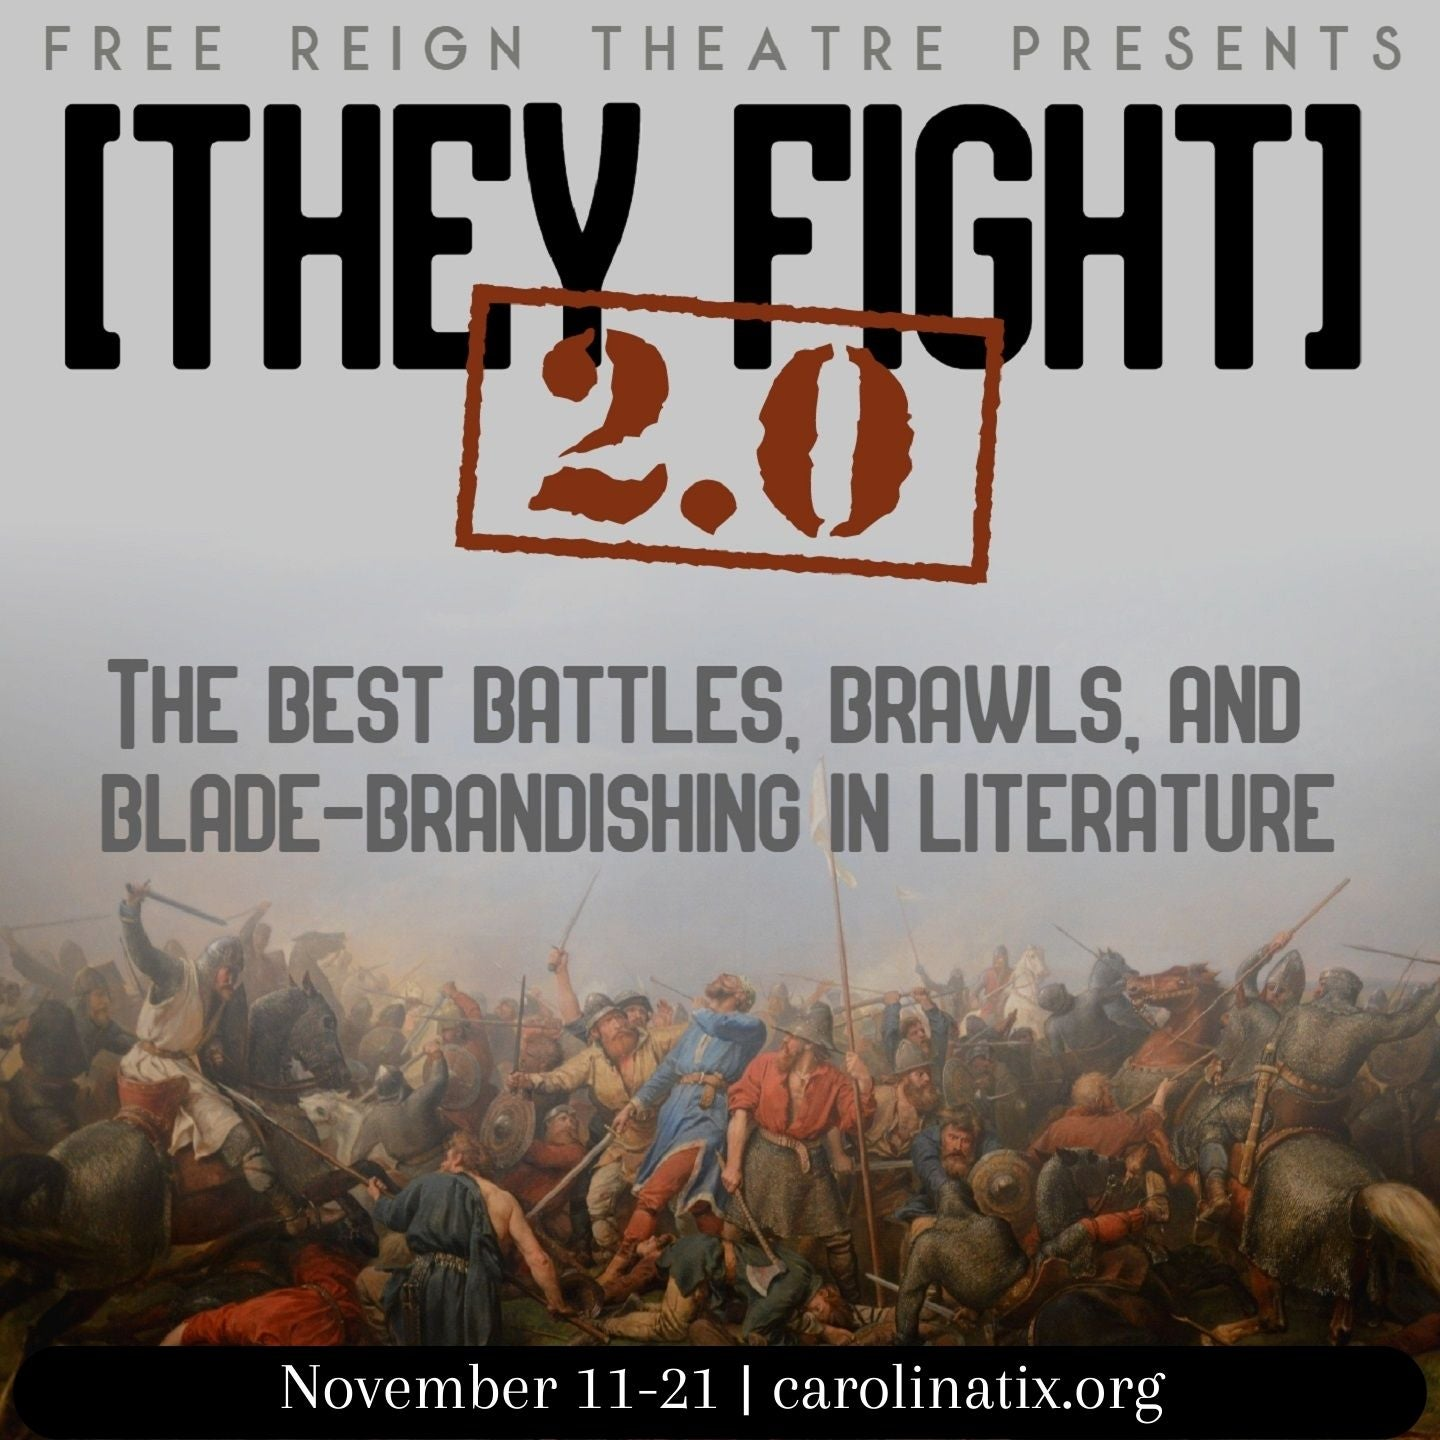 [They Fight] 2.0: the best fights in literature